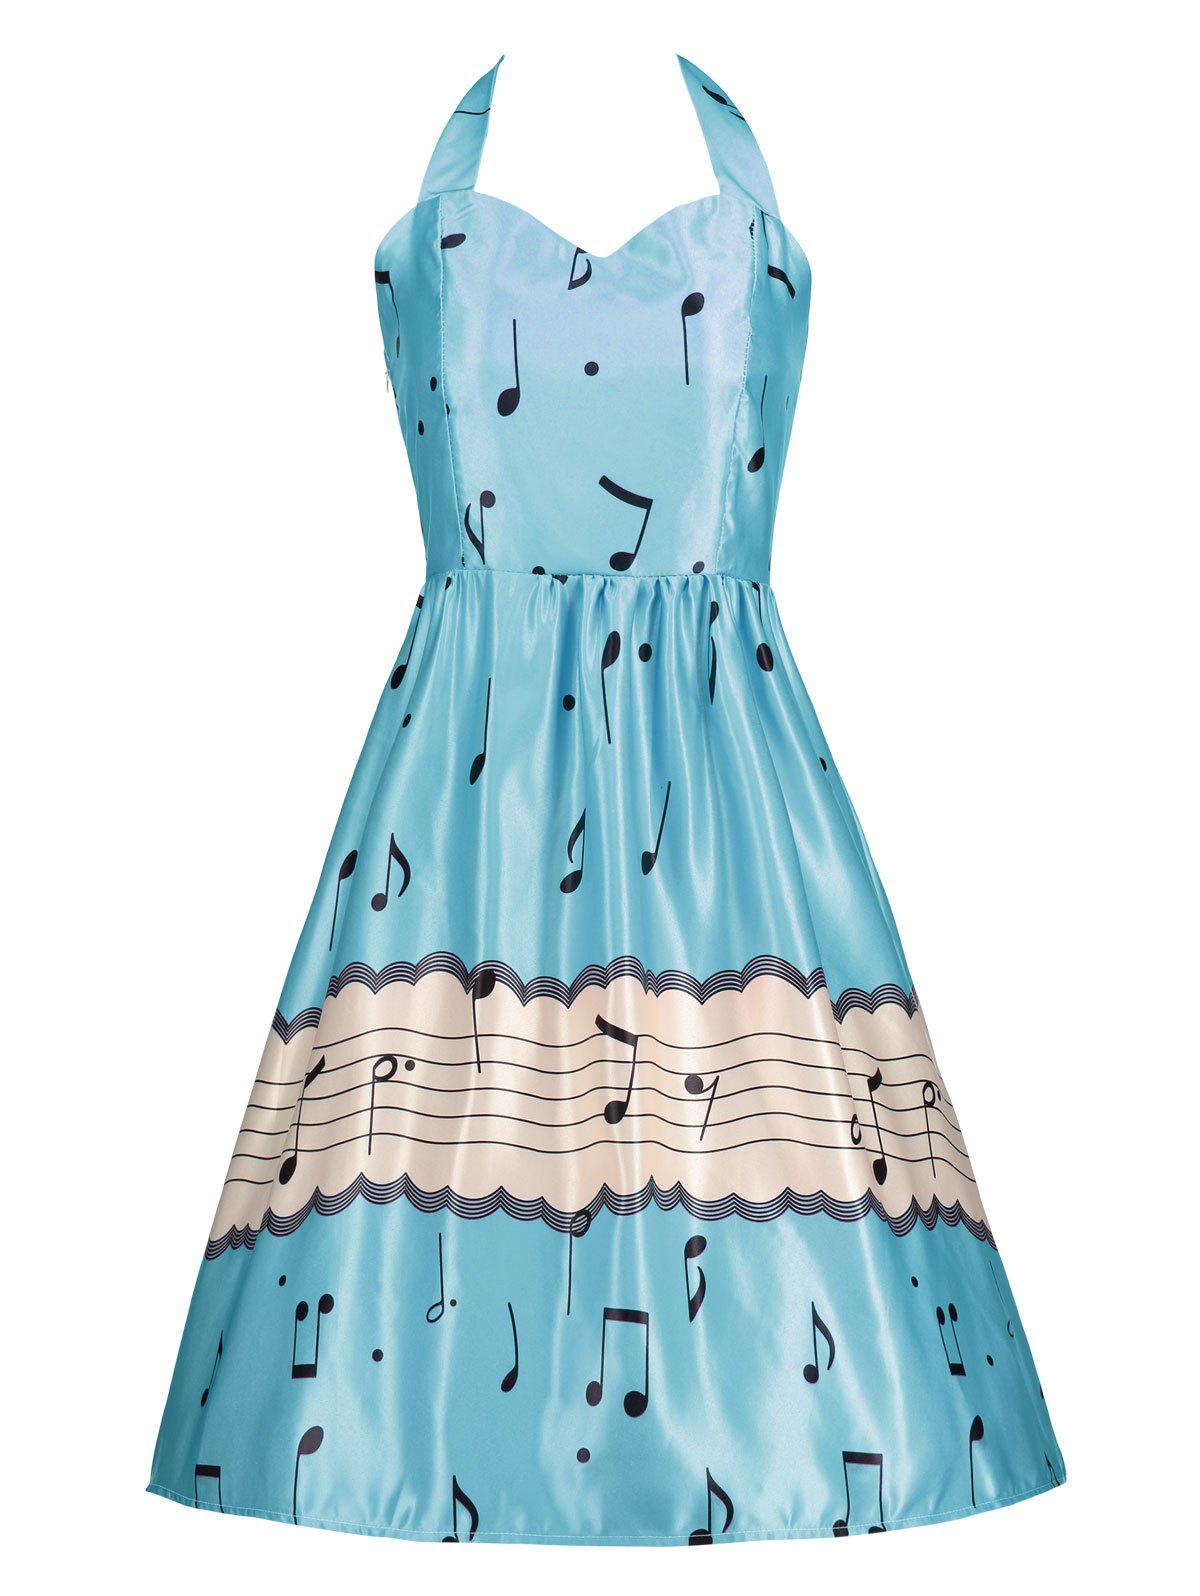 Halter Music Note High Waist Party DressWOMEN<br><br>Size: XL; Color: BLUE; Style: Vintage; Material: Polyester; Silhouette: A-Line; Dresses Length: Knee-Length; Neckline: Halter; Sleeve Length: Sleeveless; Pattern Type: Print; With Belt: No; Season: Spring,Summer; Weight: 0.2700kg; Package Contents: 1 x Dress;